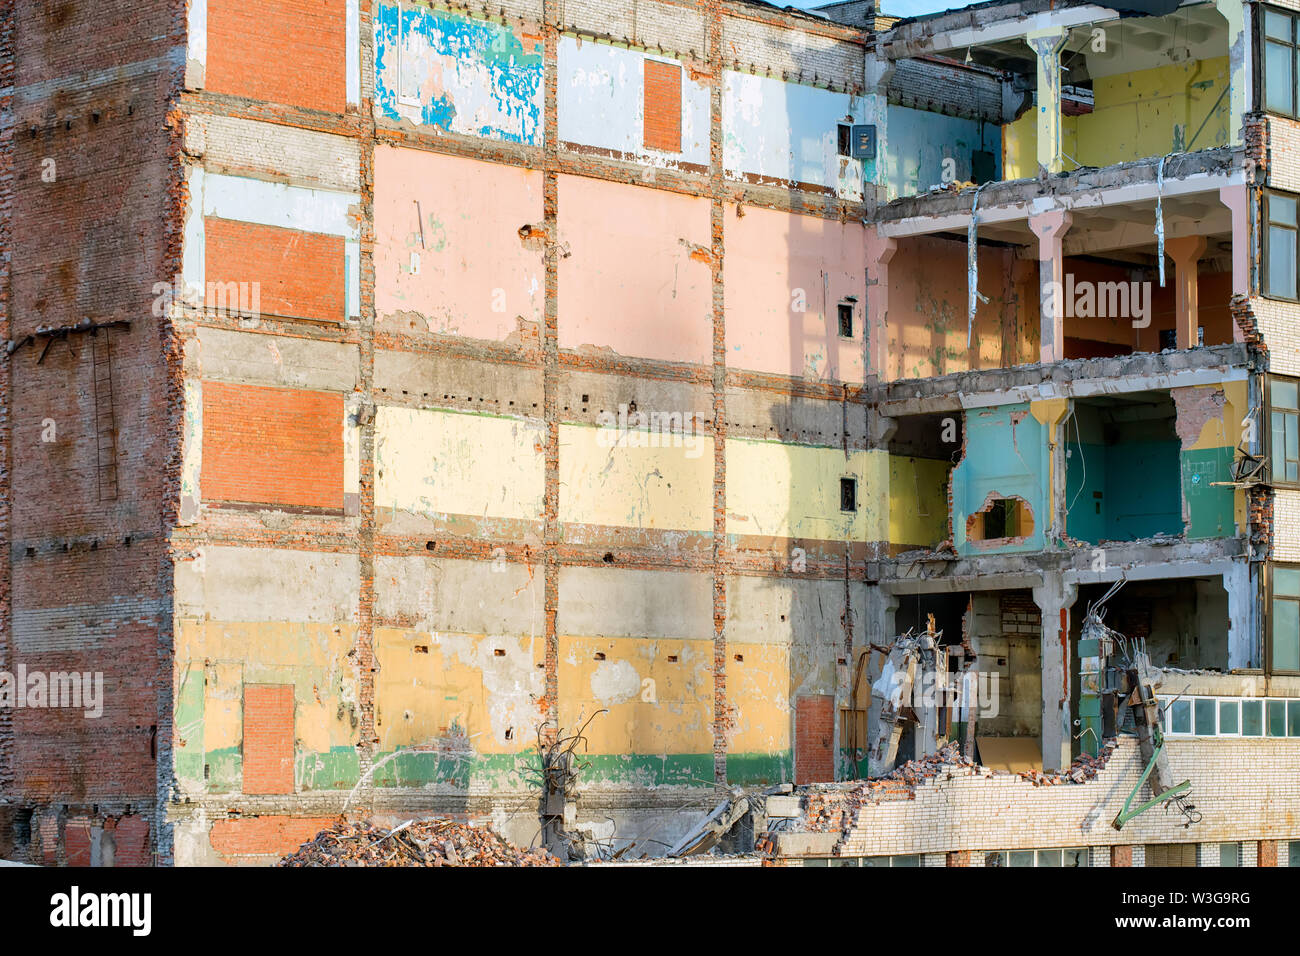 Partially destroyed industrial building with colored walls. Demolition or destruction theme - Stock Image